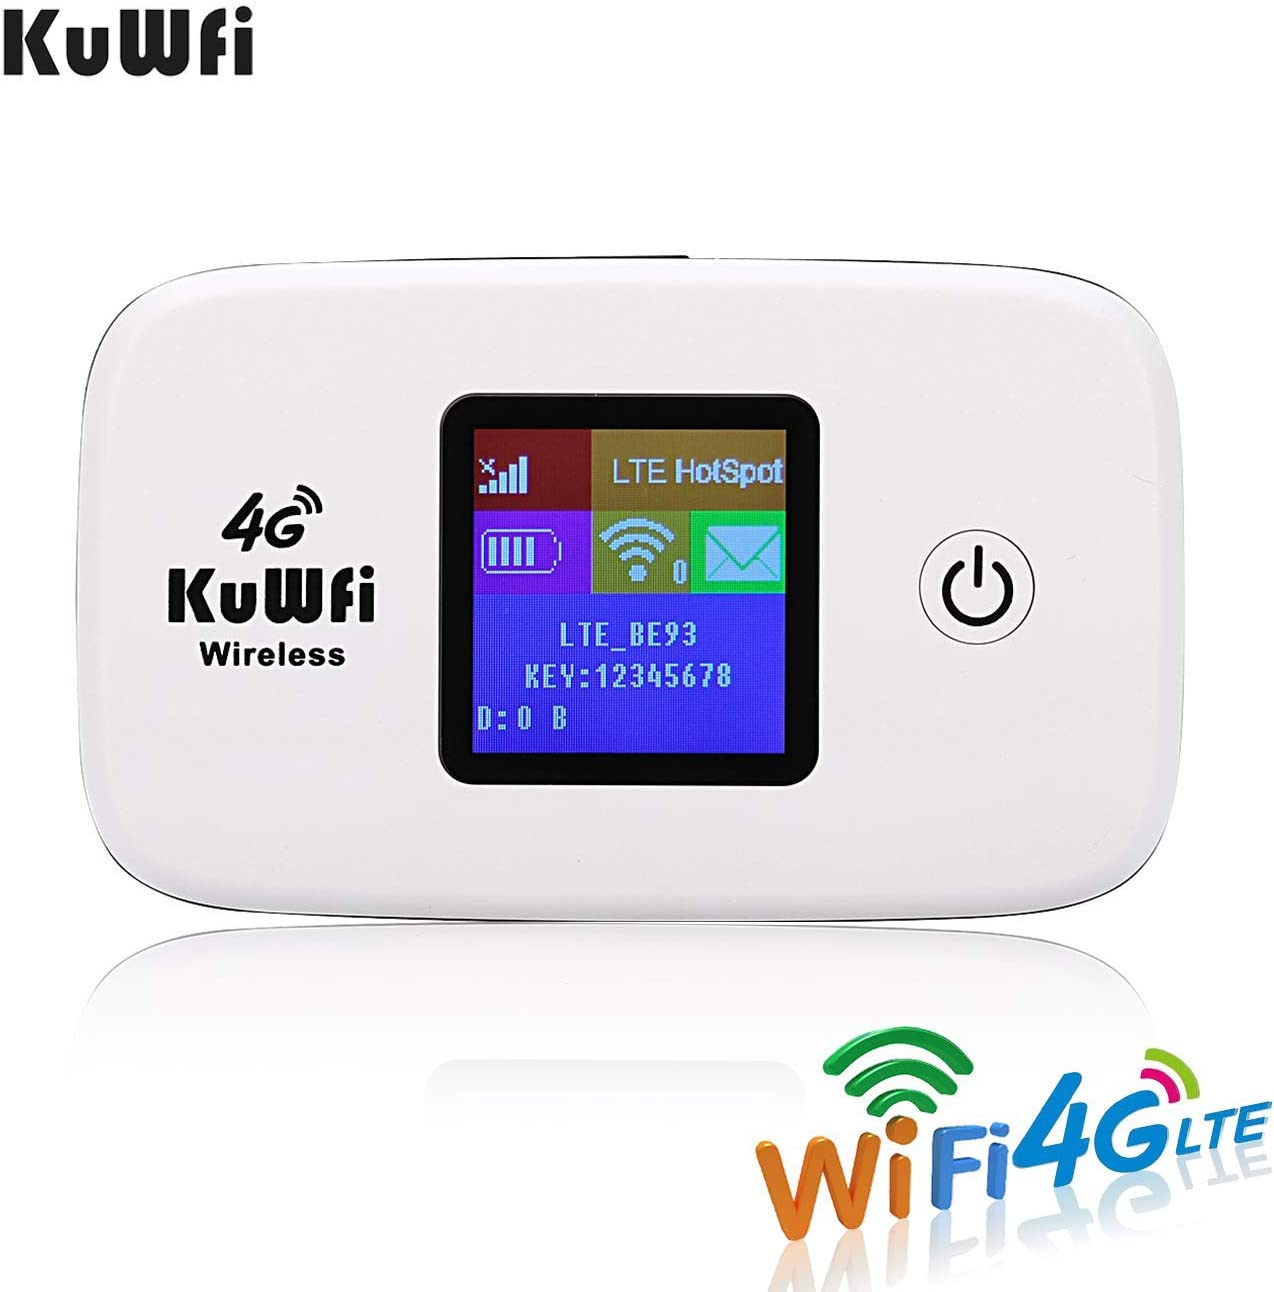 KuWFi 4G LTE Mobile WiFi Hotspot Unlocked Wireless Internet Router Devices with SIM Card Slot for Travel Support B1/B3/B5/B7/B8/B20 in Europe ...